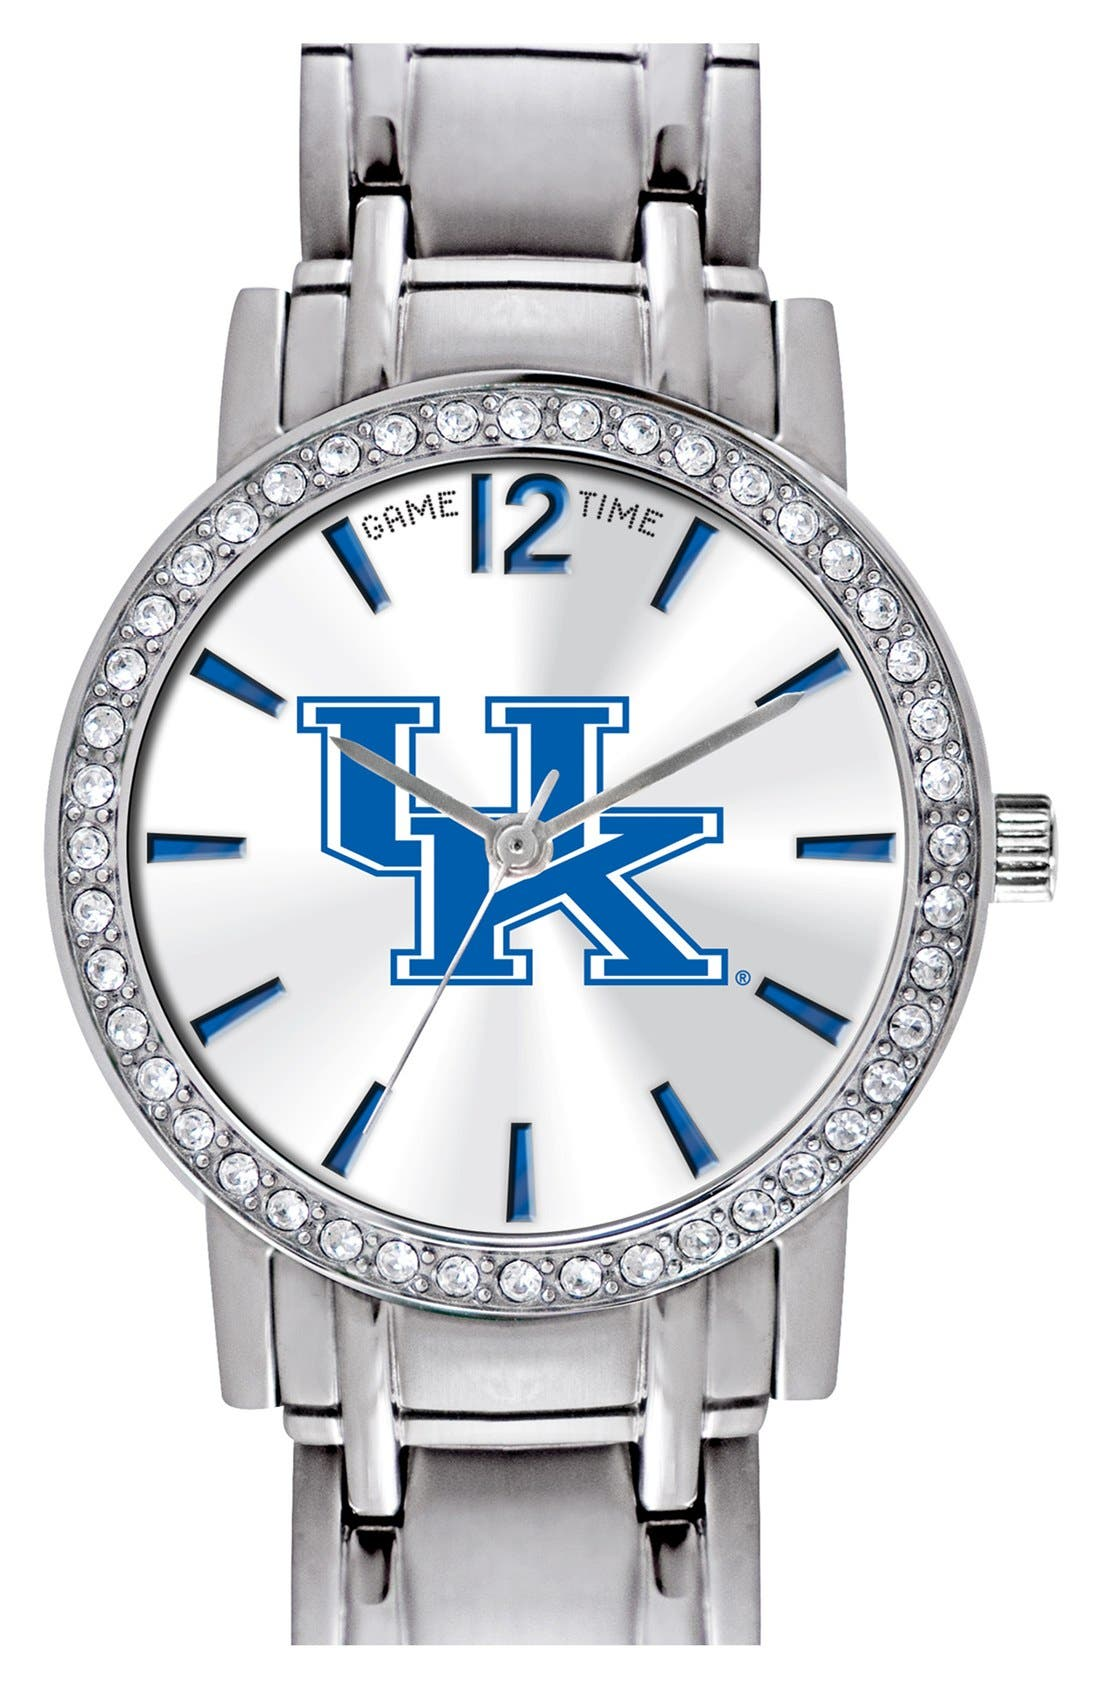 Alternate Image 1 Selected - Game Time Watches 'College All Star - University of Kentucky' Crystal Bezel Bracelet Watch, 32mm